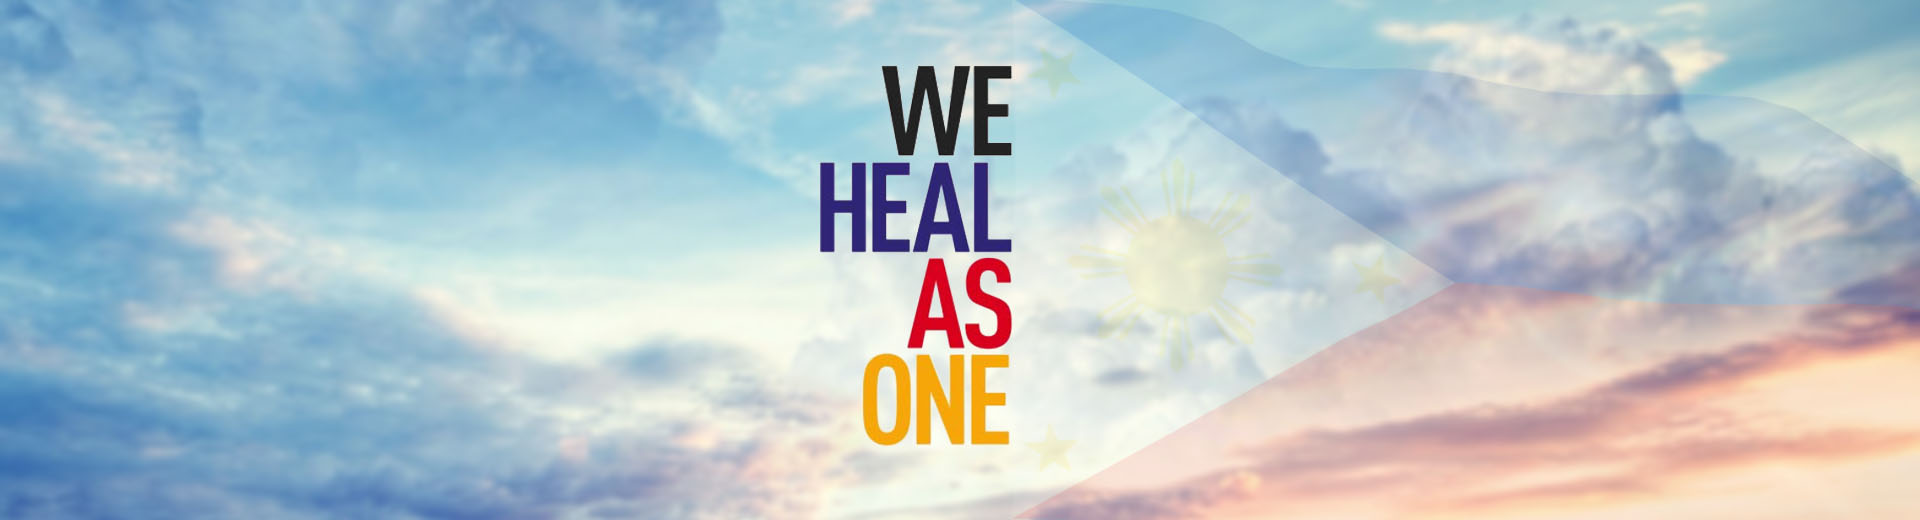 01-we-heal-as-one.jpg